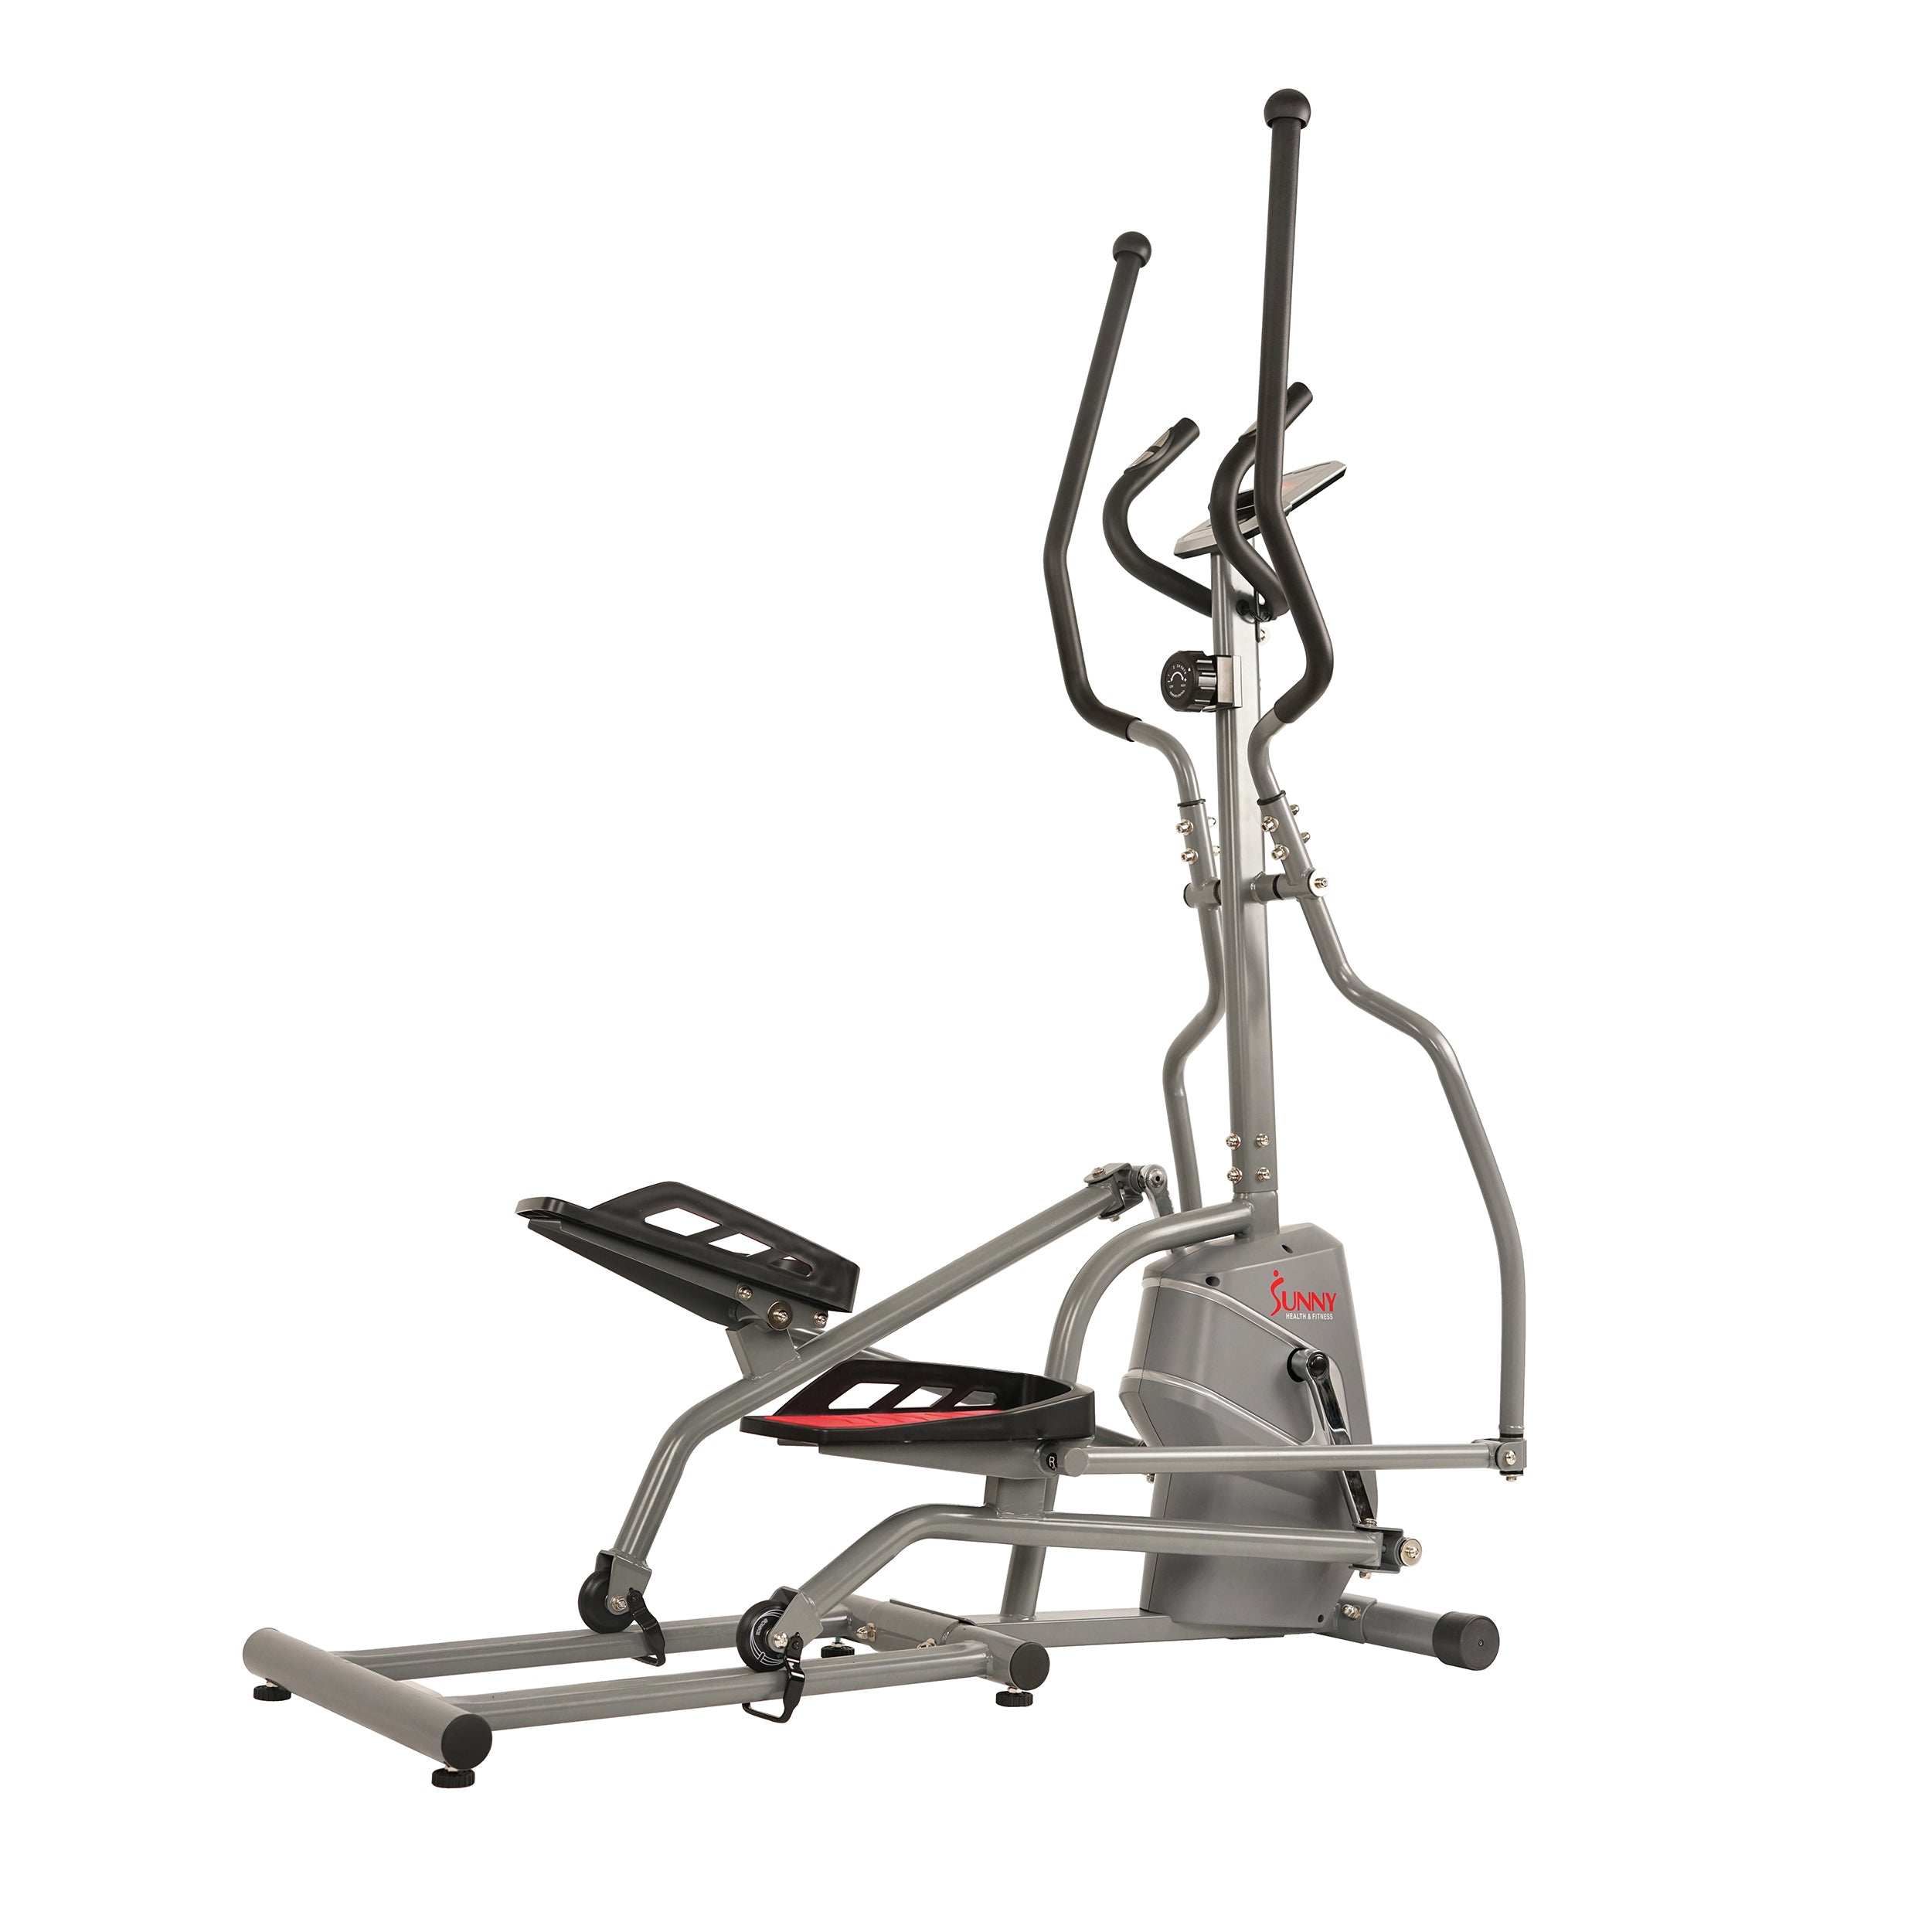 sunny-health-fitness-ellipticals-magnetic-elliptical-trainer-elliptical-machine-tablet-holder-LCD-monitor-and-heart-rate-monitor-SF-E3810-stride